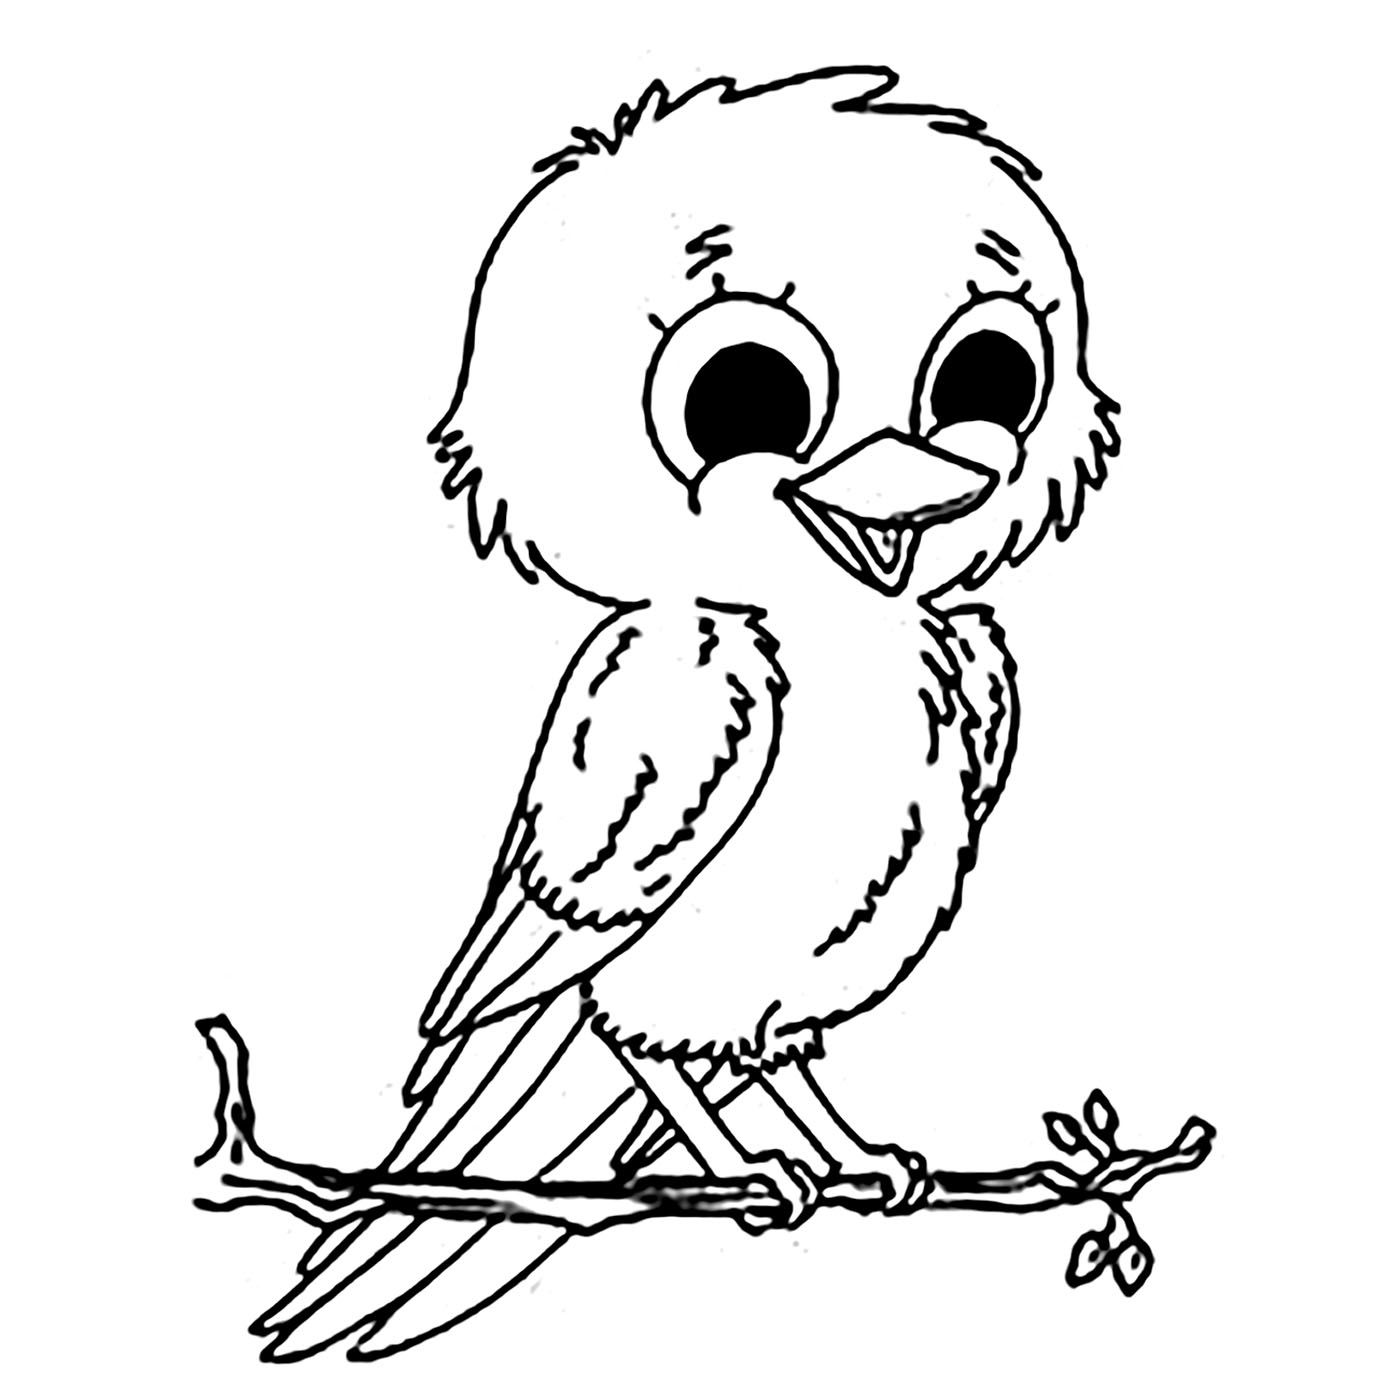 Birds coloring page with few details for kids, From the